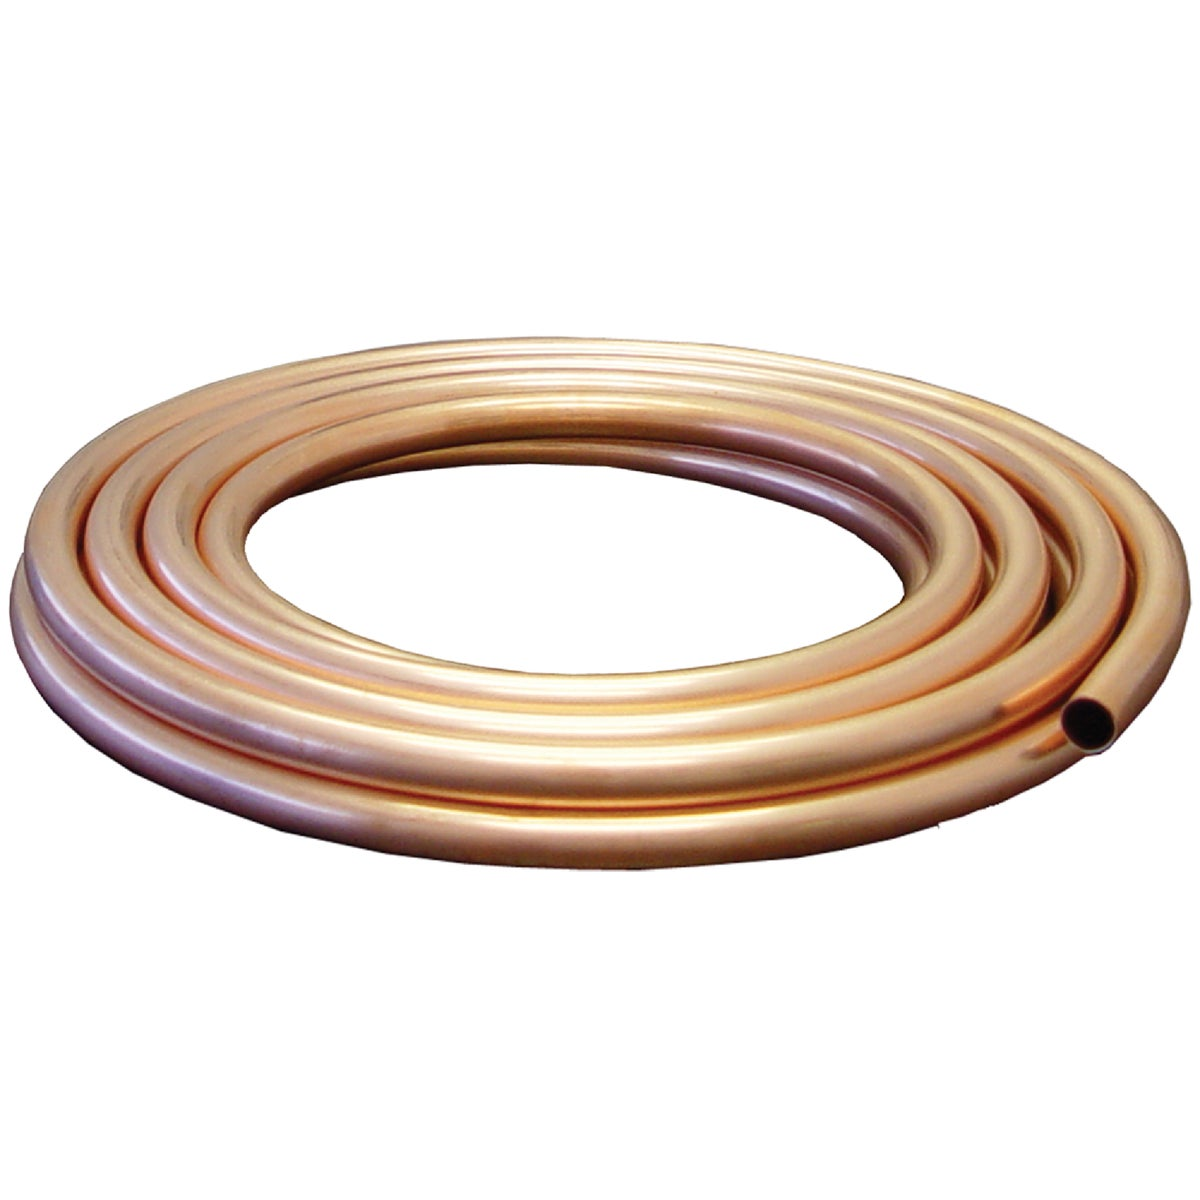 "3/8""ODX20'UG COPPER COIL - UT06020 by Mueller B K"